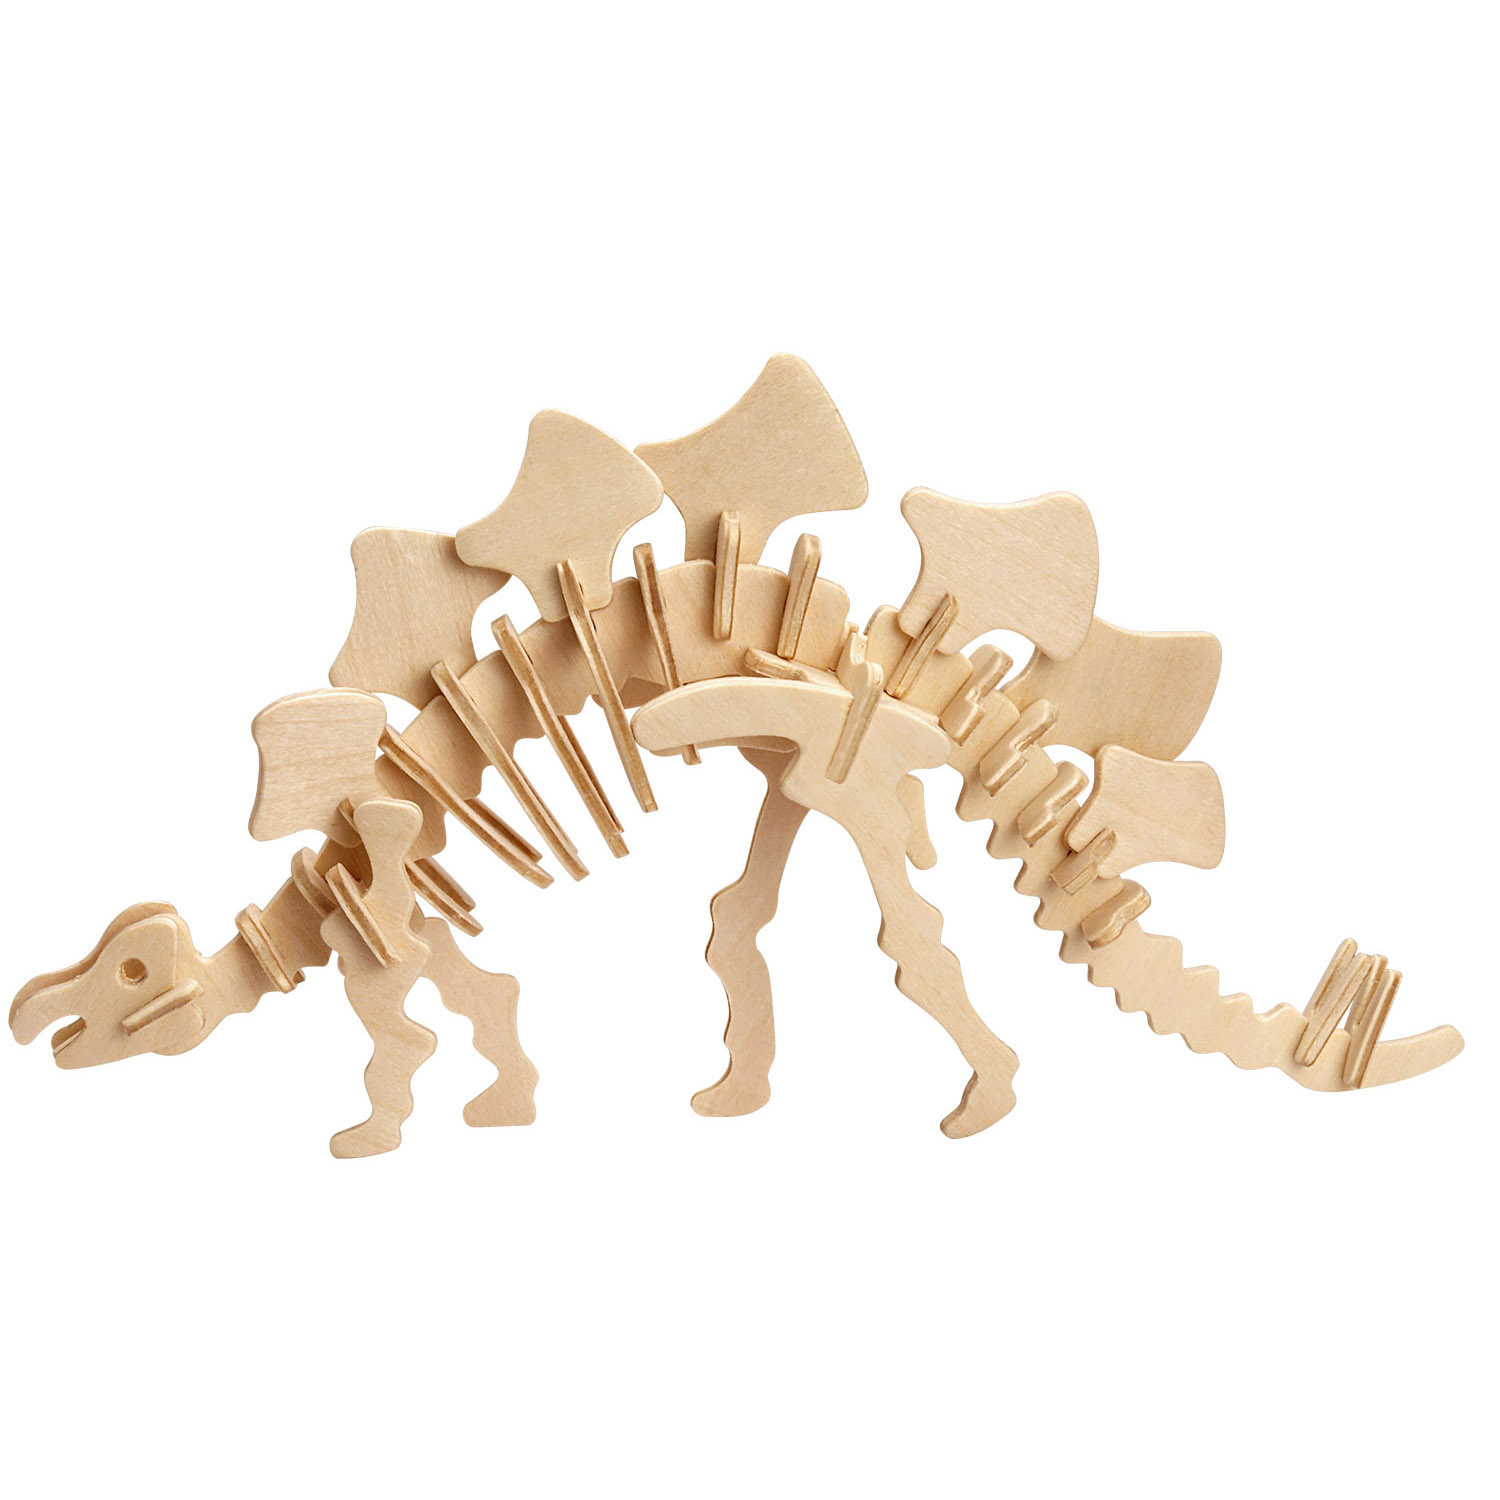 3d puzzle aus holz stegosaurus 38 teile puzzle online kaufen. Black Bedroom Furniture Sets. Home Design Ideas